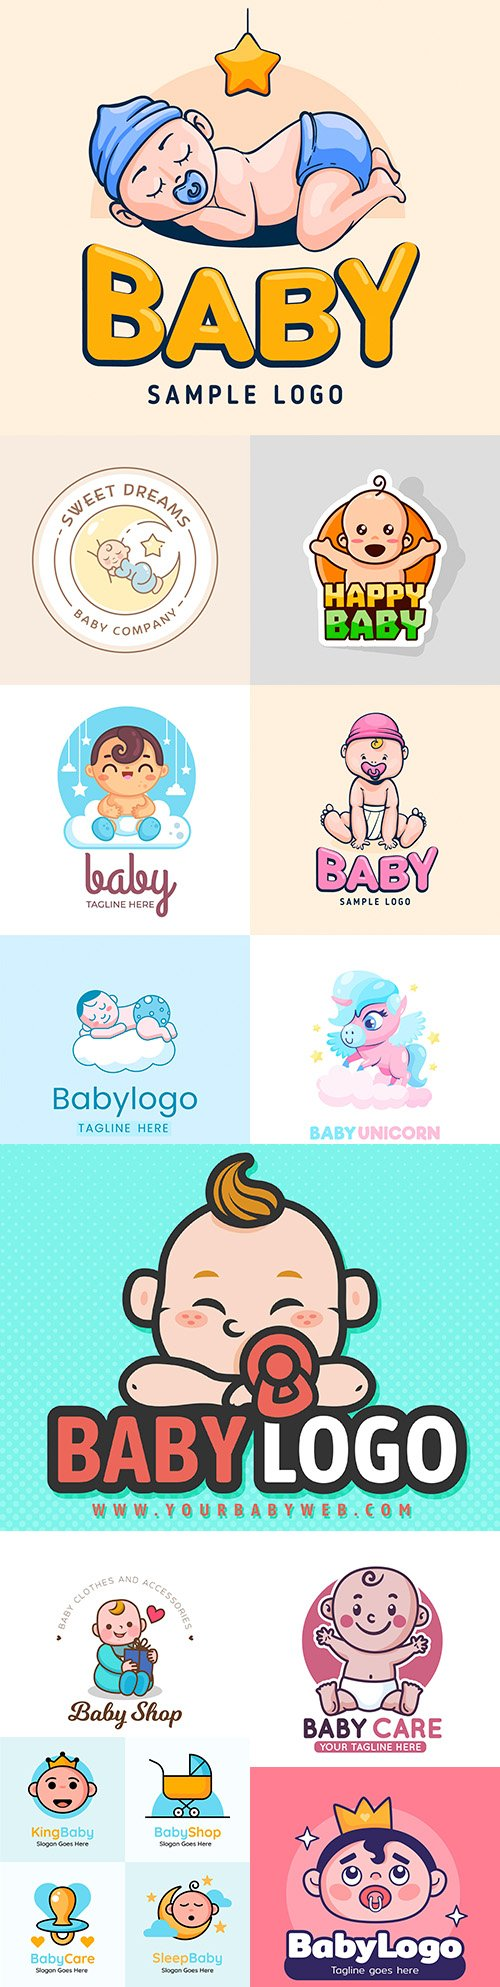 Baby brand name company logos corporate design